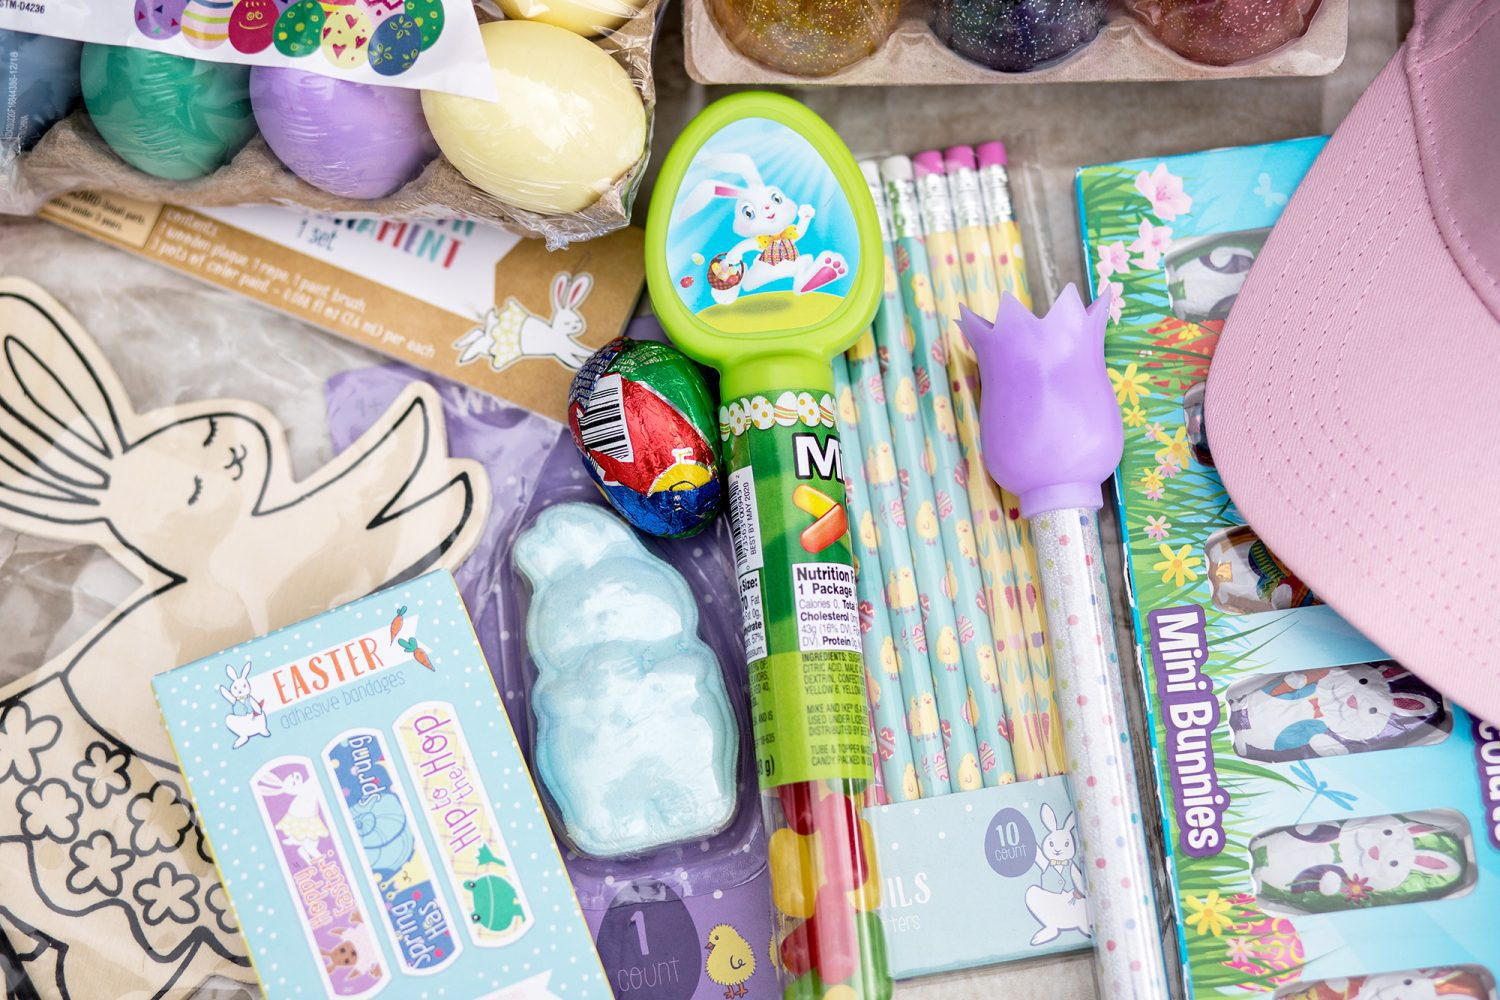 Easter pencils, band-aids, chocolate bunnies and egg shaped chalk are just a few cheap Easter basket stuffers